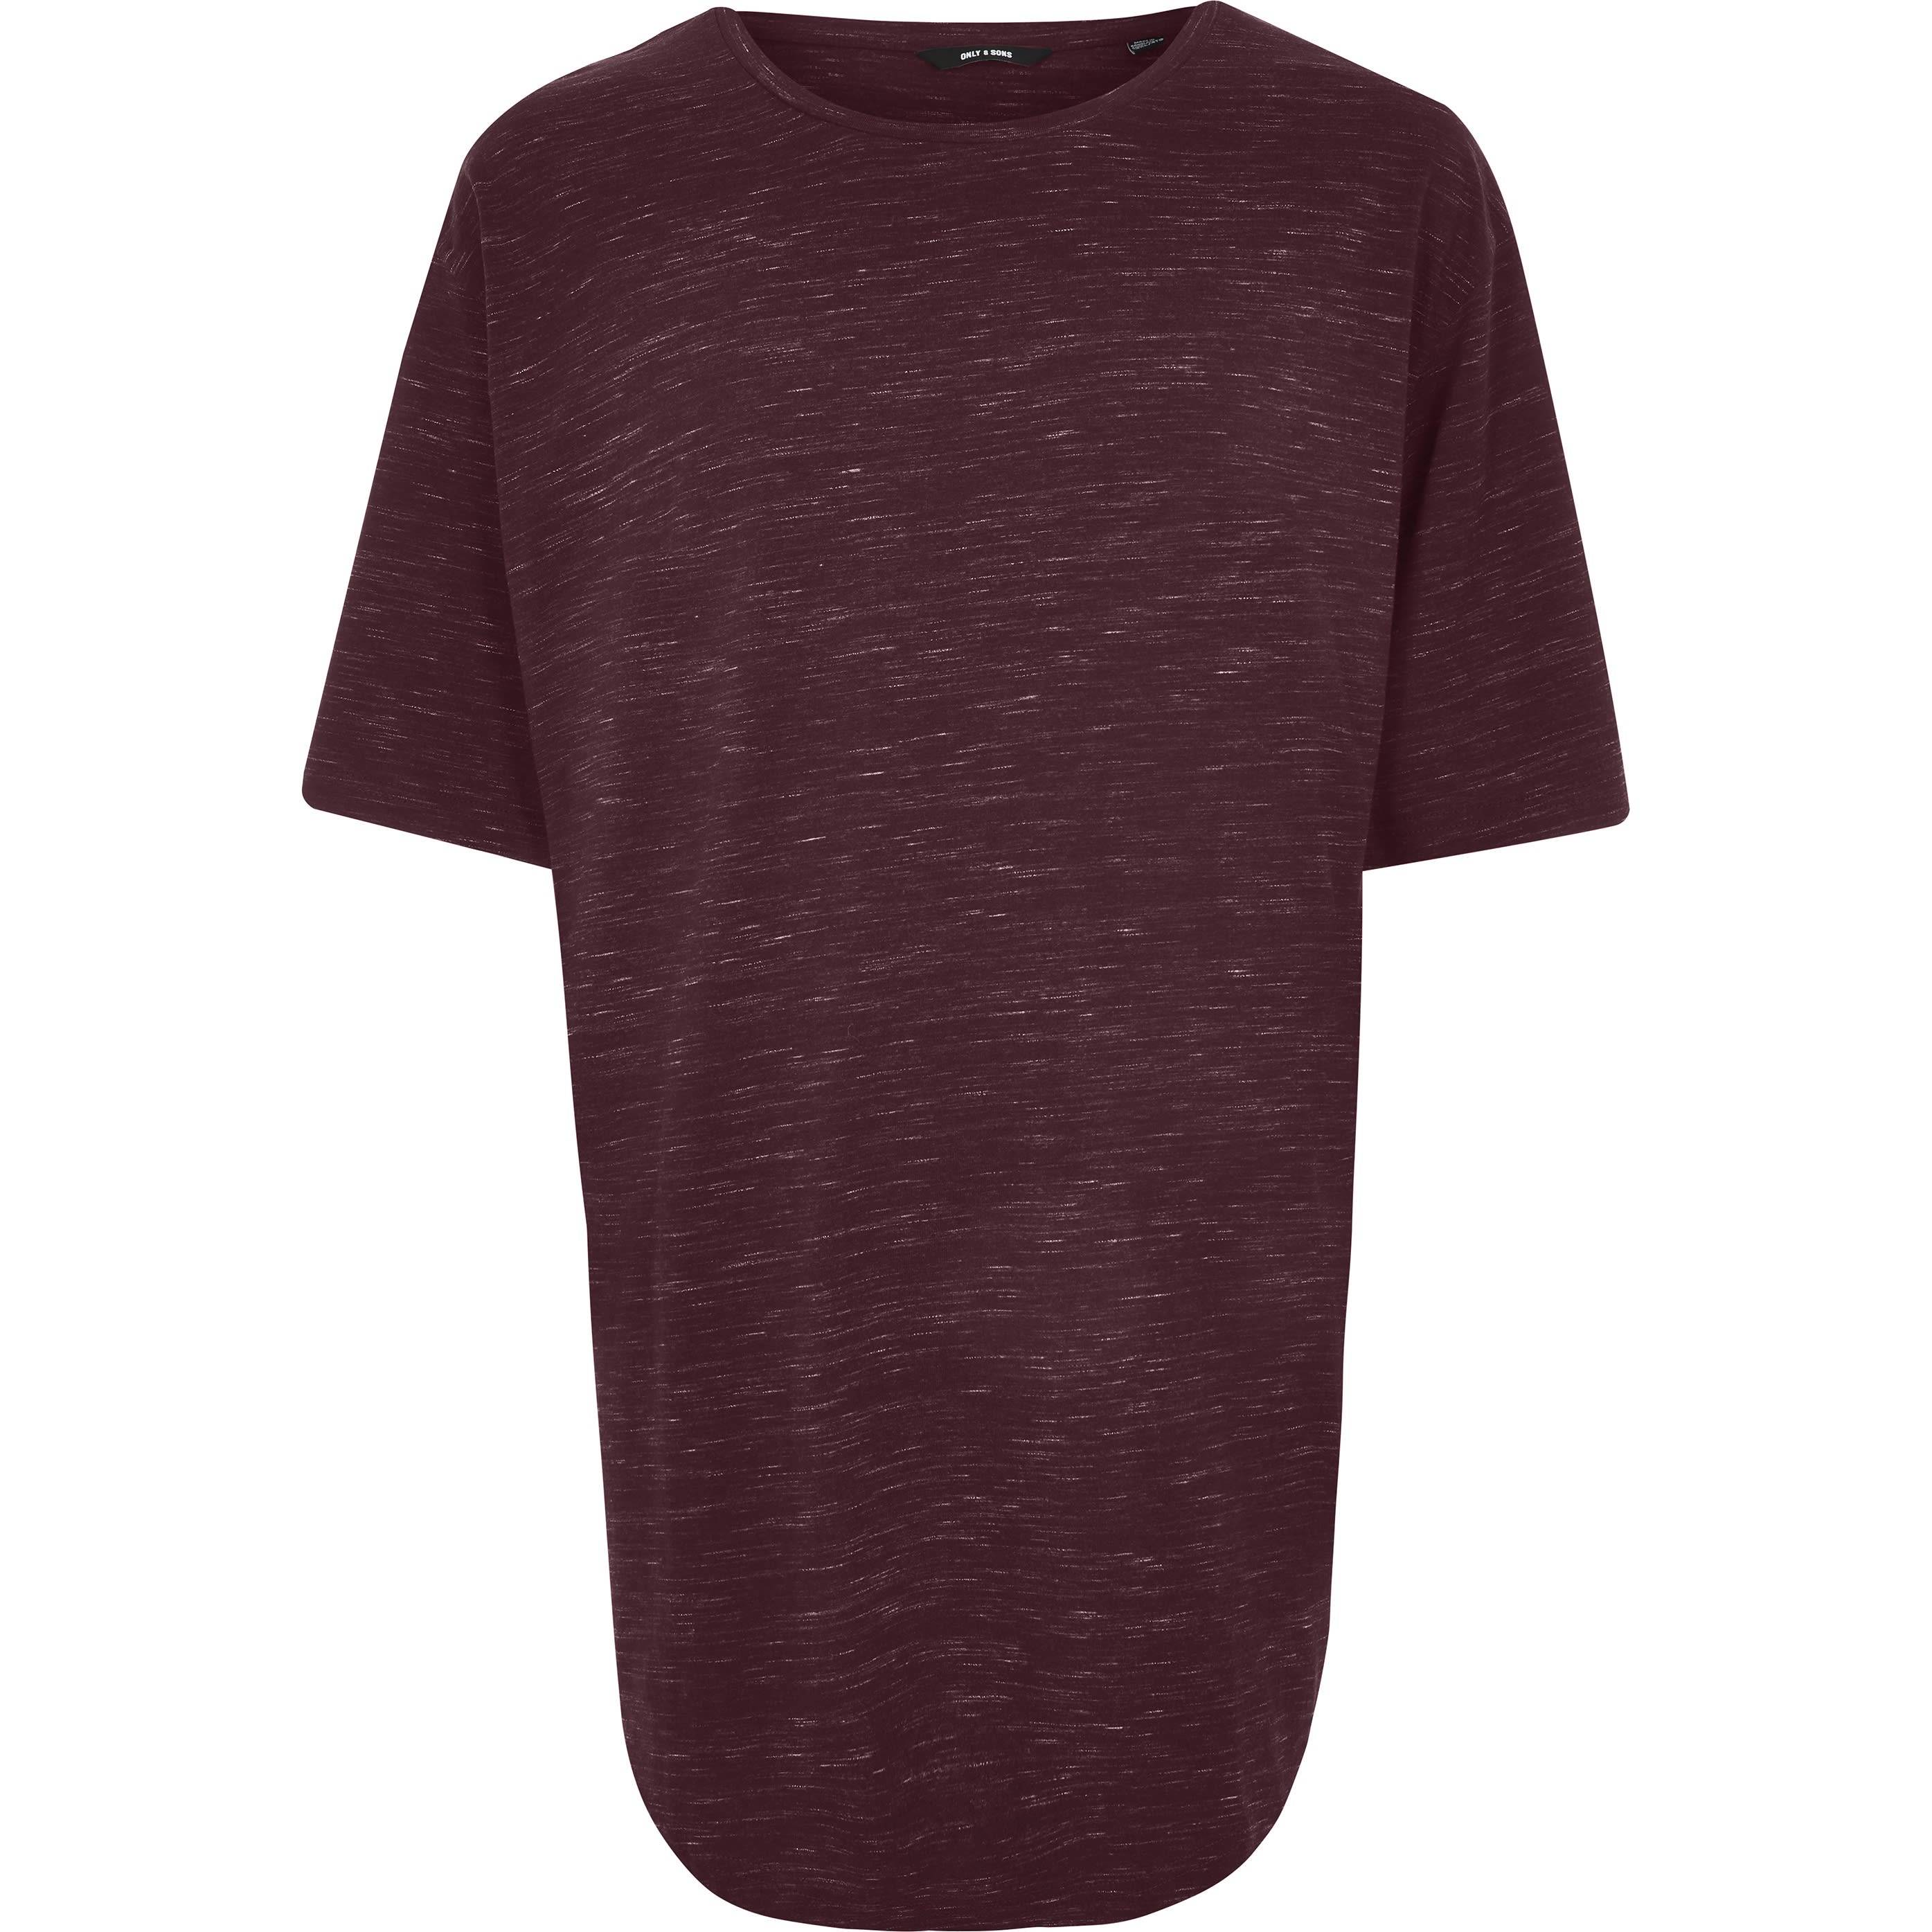 River Island Mens Only & Sons Big and Tall Red print T-shirt (XXXXXXL)